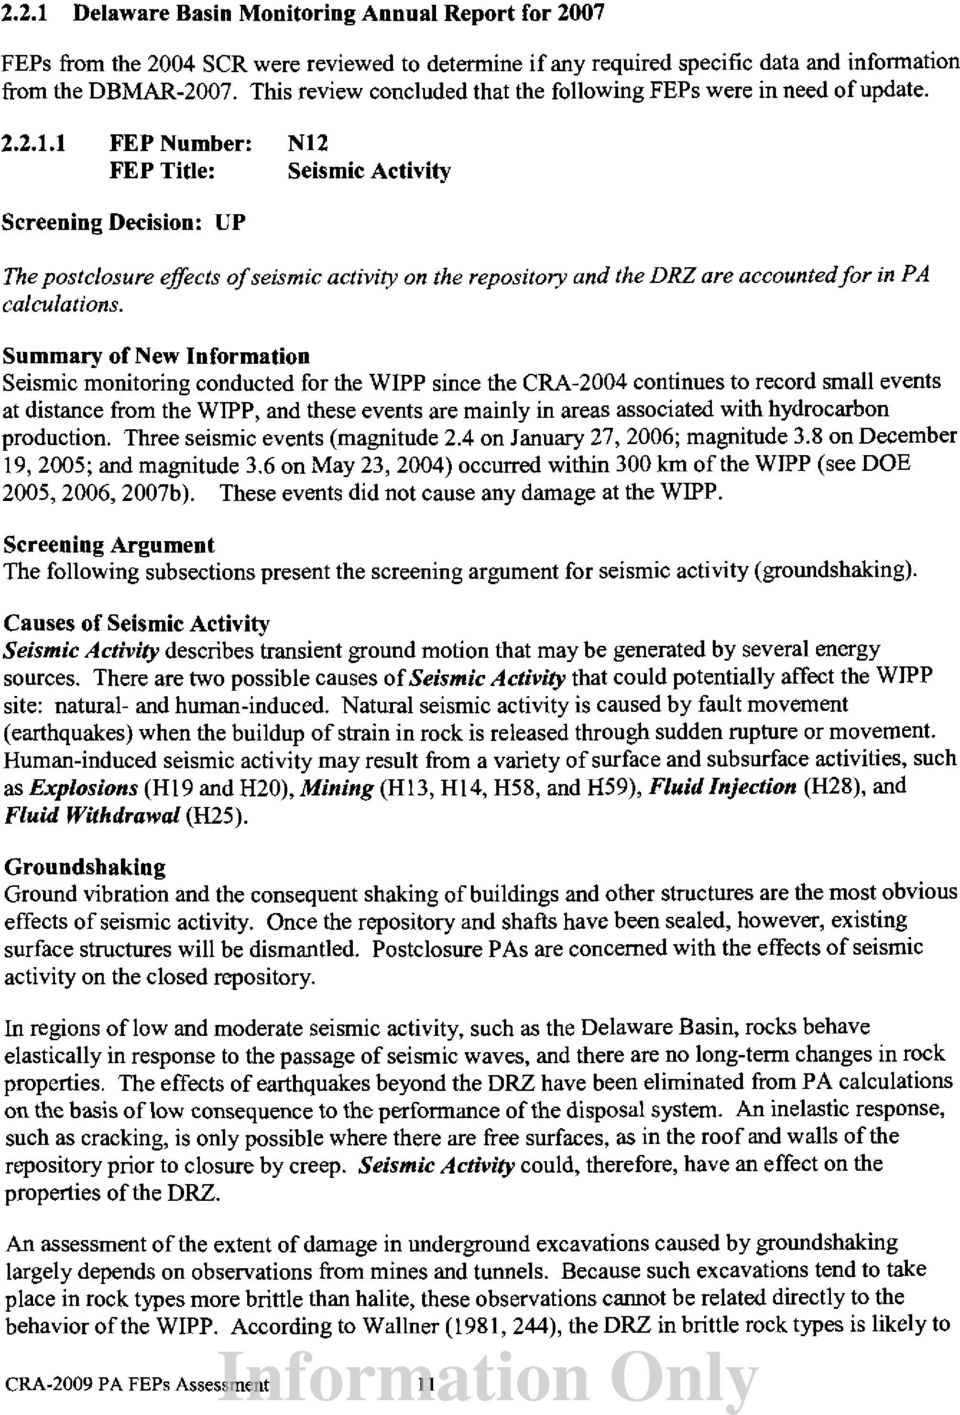 1 FEP Number: N12 FEP Title: Seismic Activity Screening Decision: UP The postc/osure effects of seismic activity on the repository and the DRZ are accounted for in PA calculations.